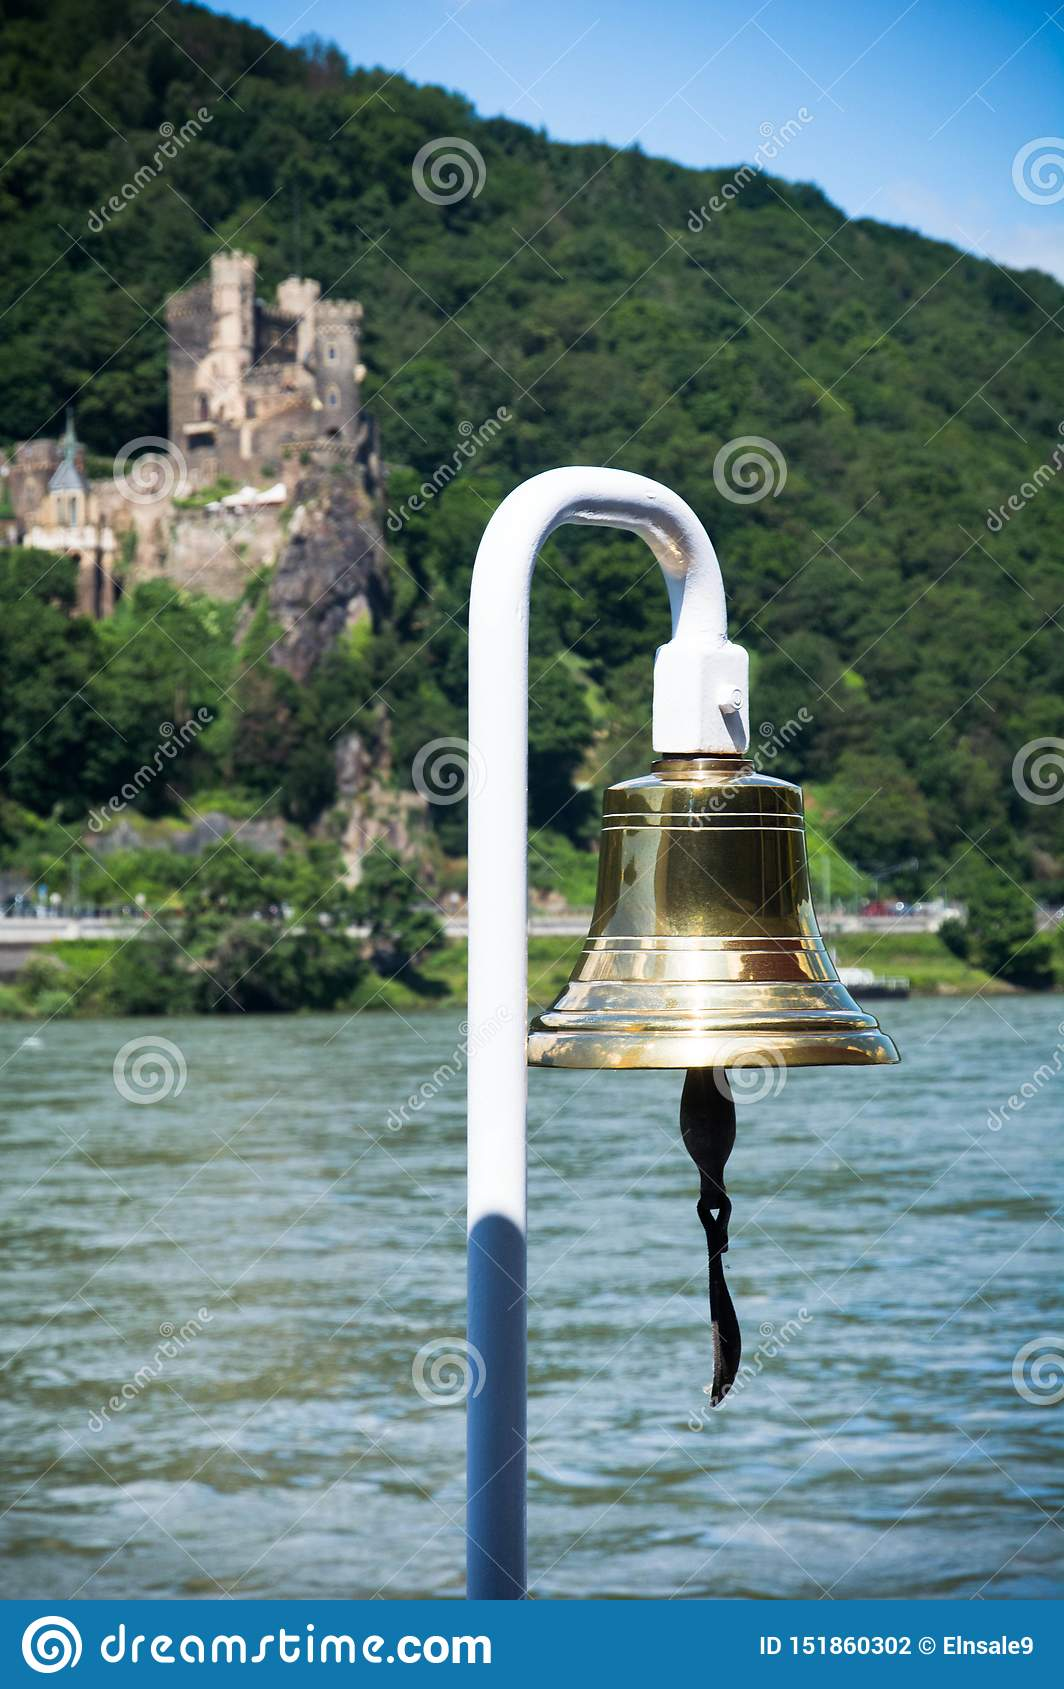 Boat`s bell on a river with a castle in the background